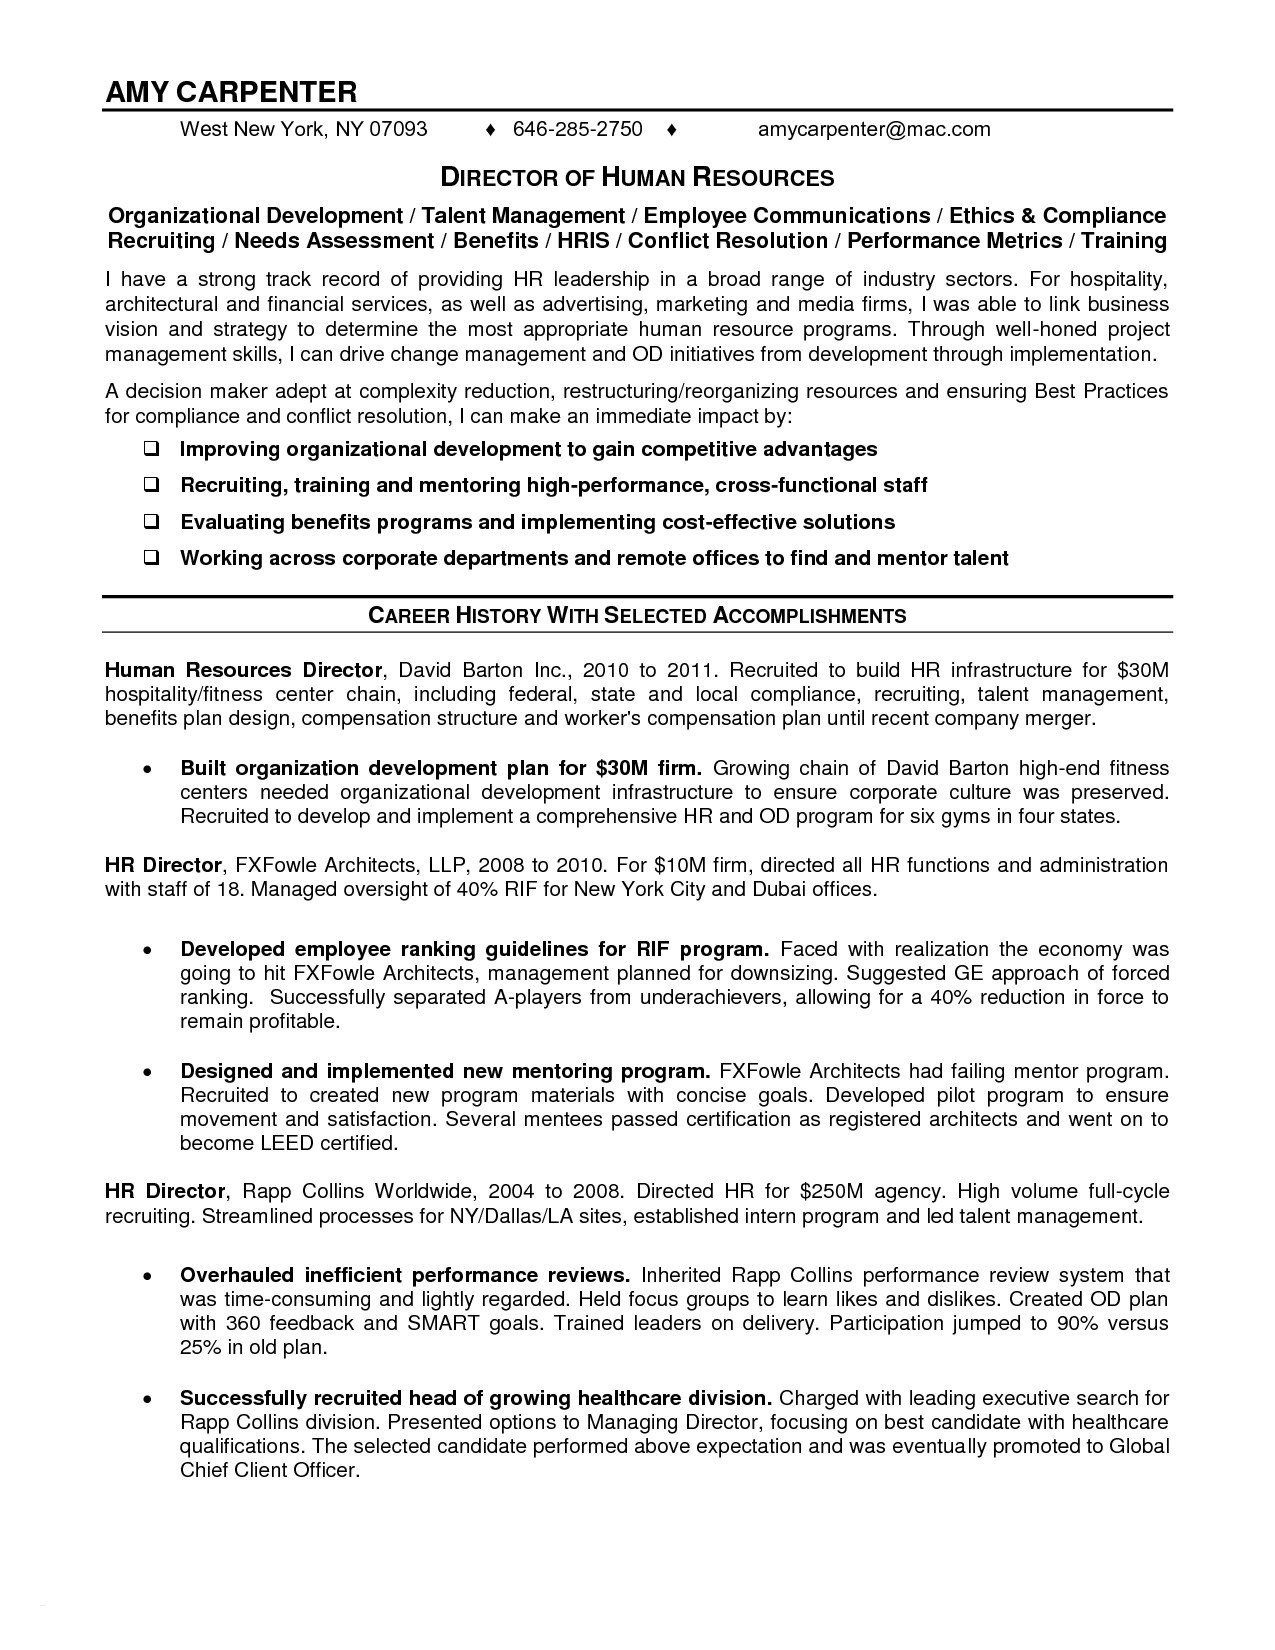 Estate Planning Letter Of Instruction Template - Technical Resume Template Simple Unique Pr Resume Template Elegant